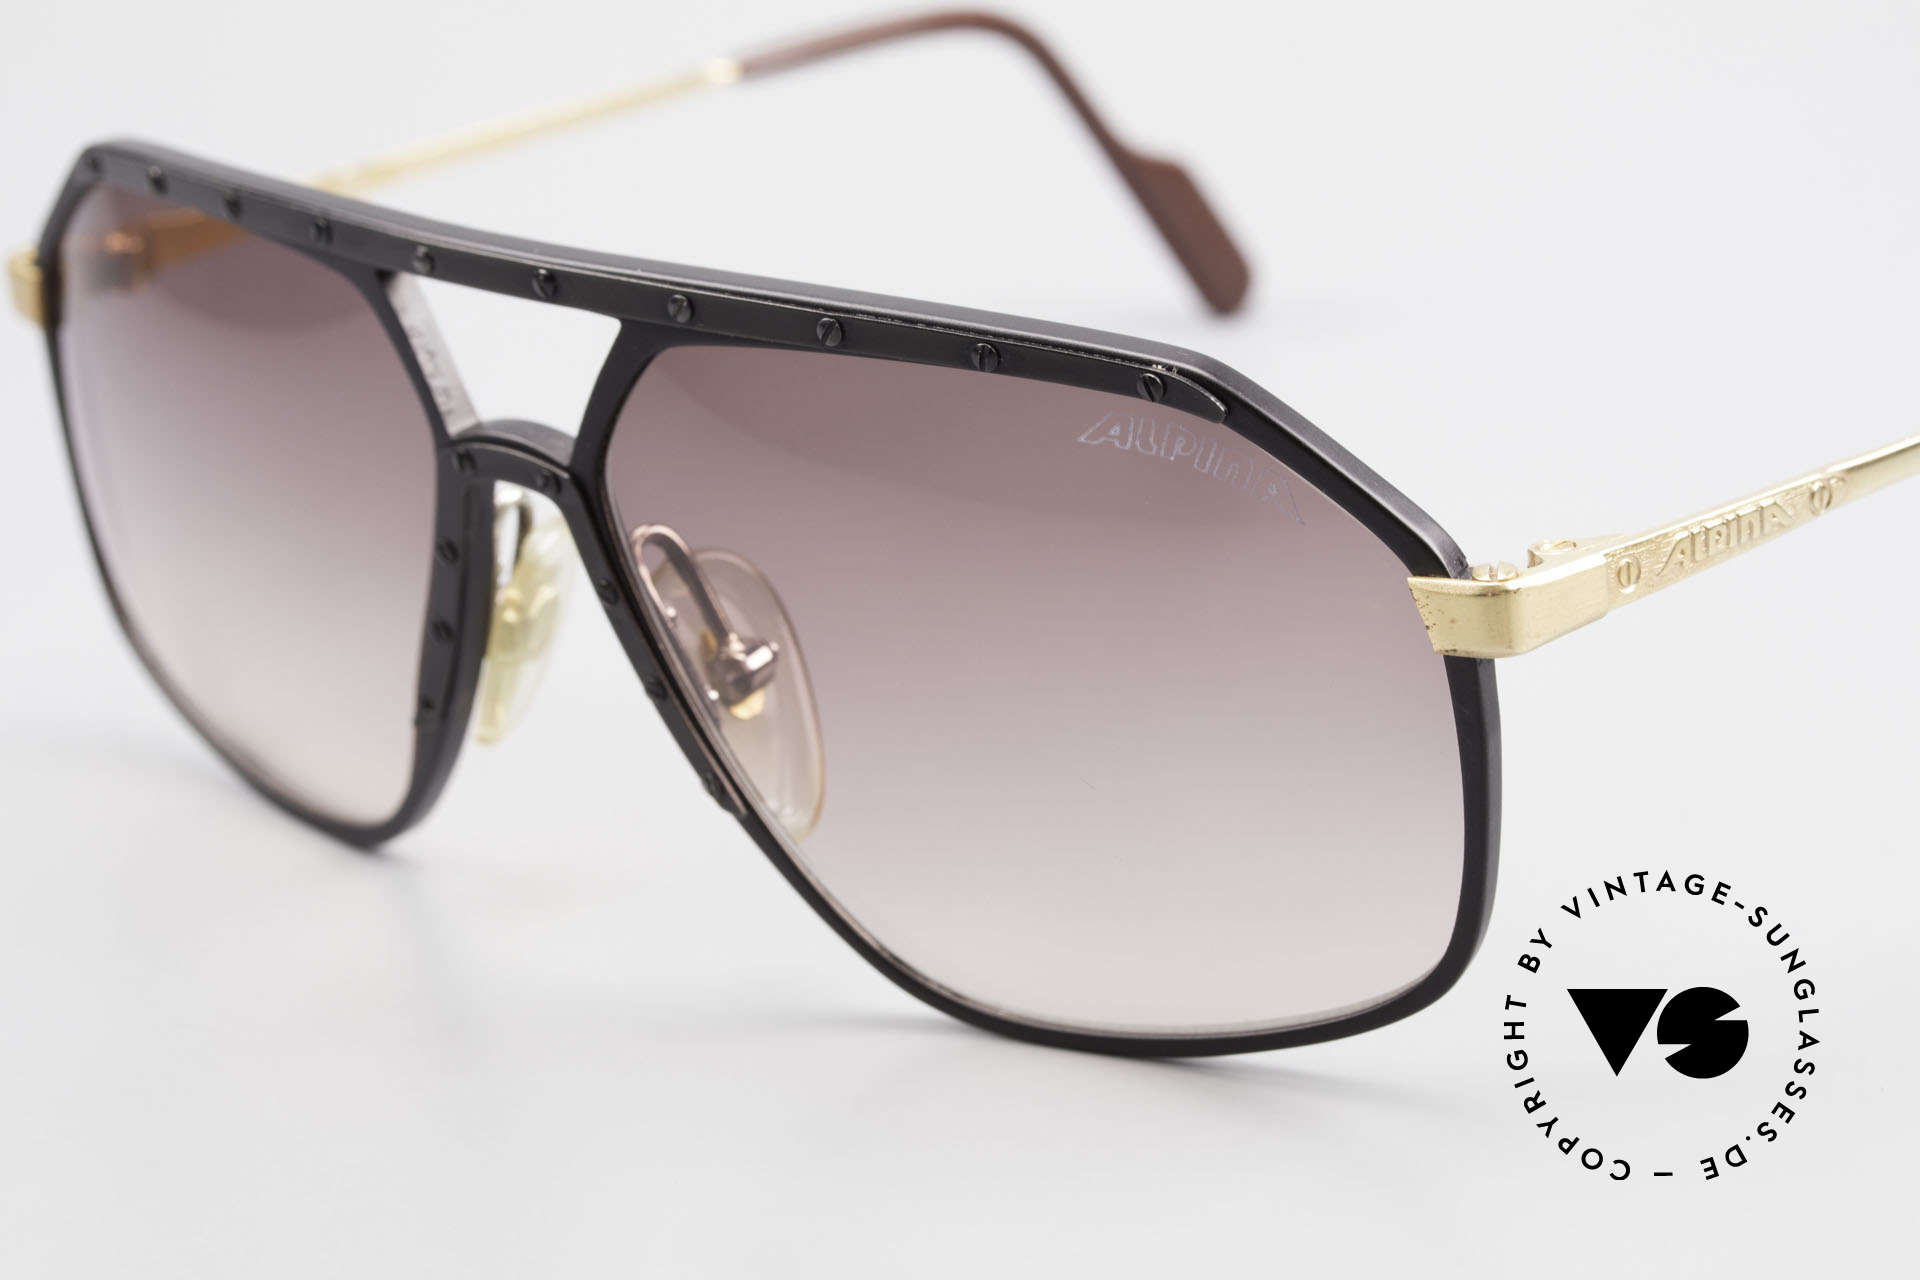 Alpina M6 Rare Vintage 80's Sunglasses, black/gold: black screws & black ornamental cover, Made for Men and Women